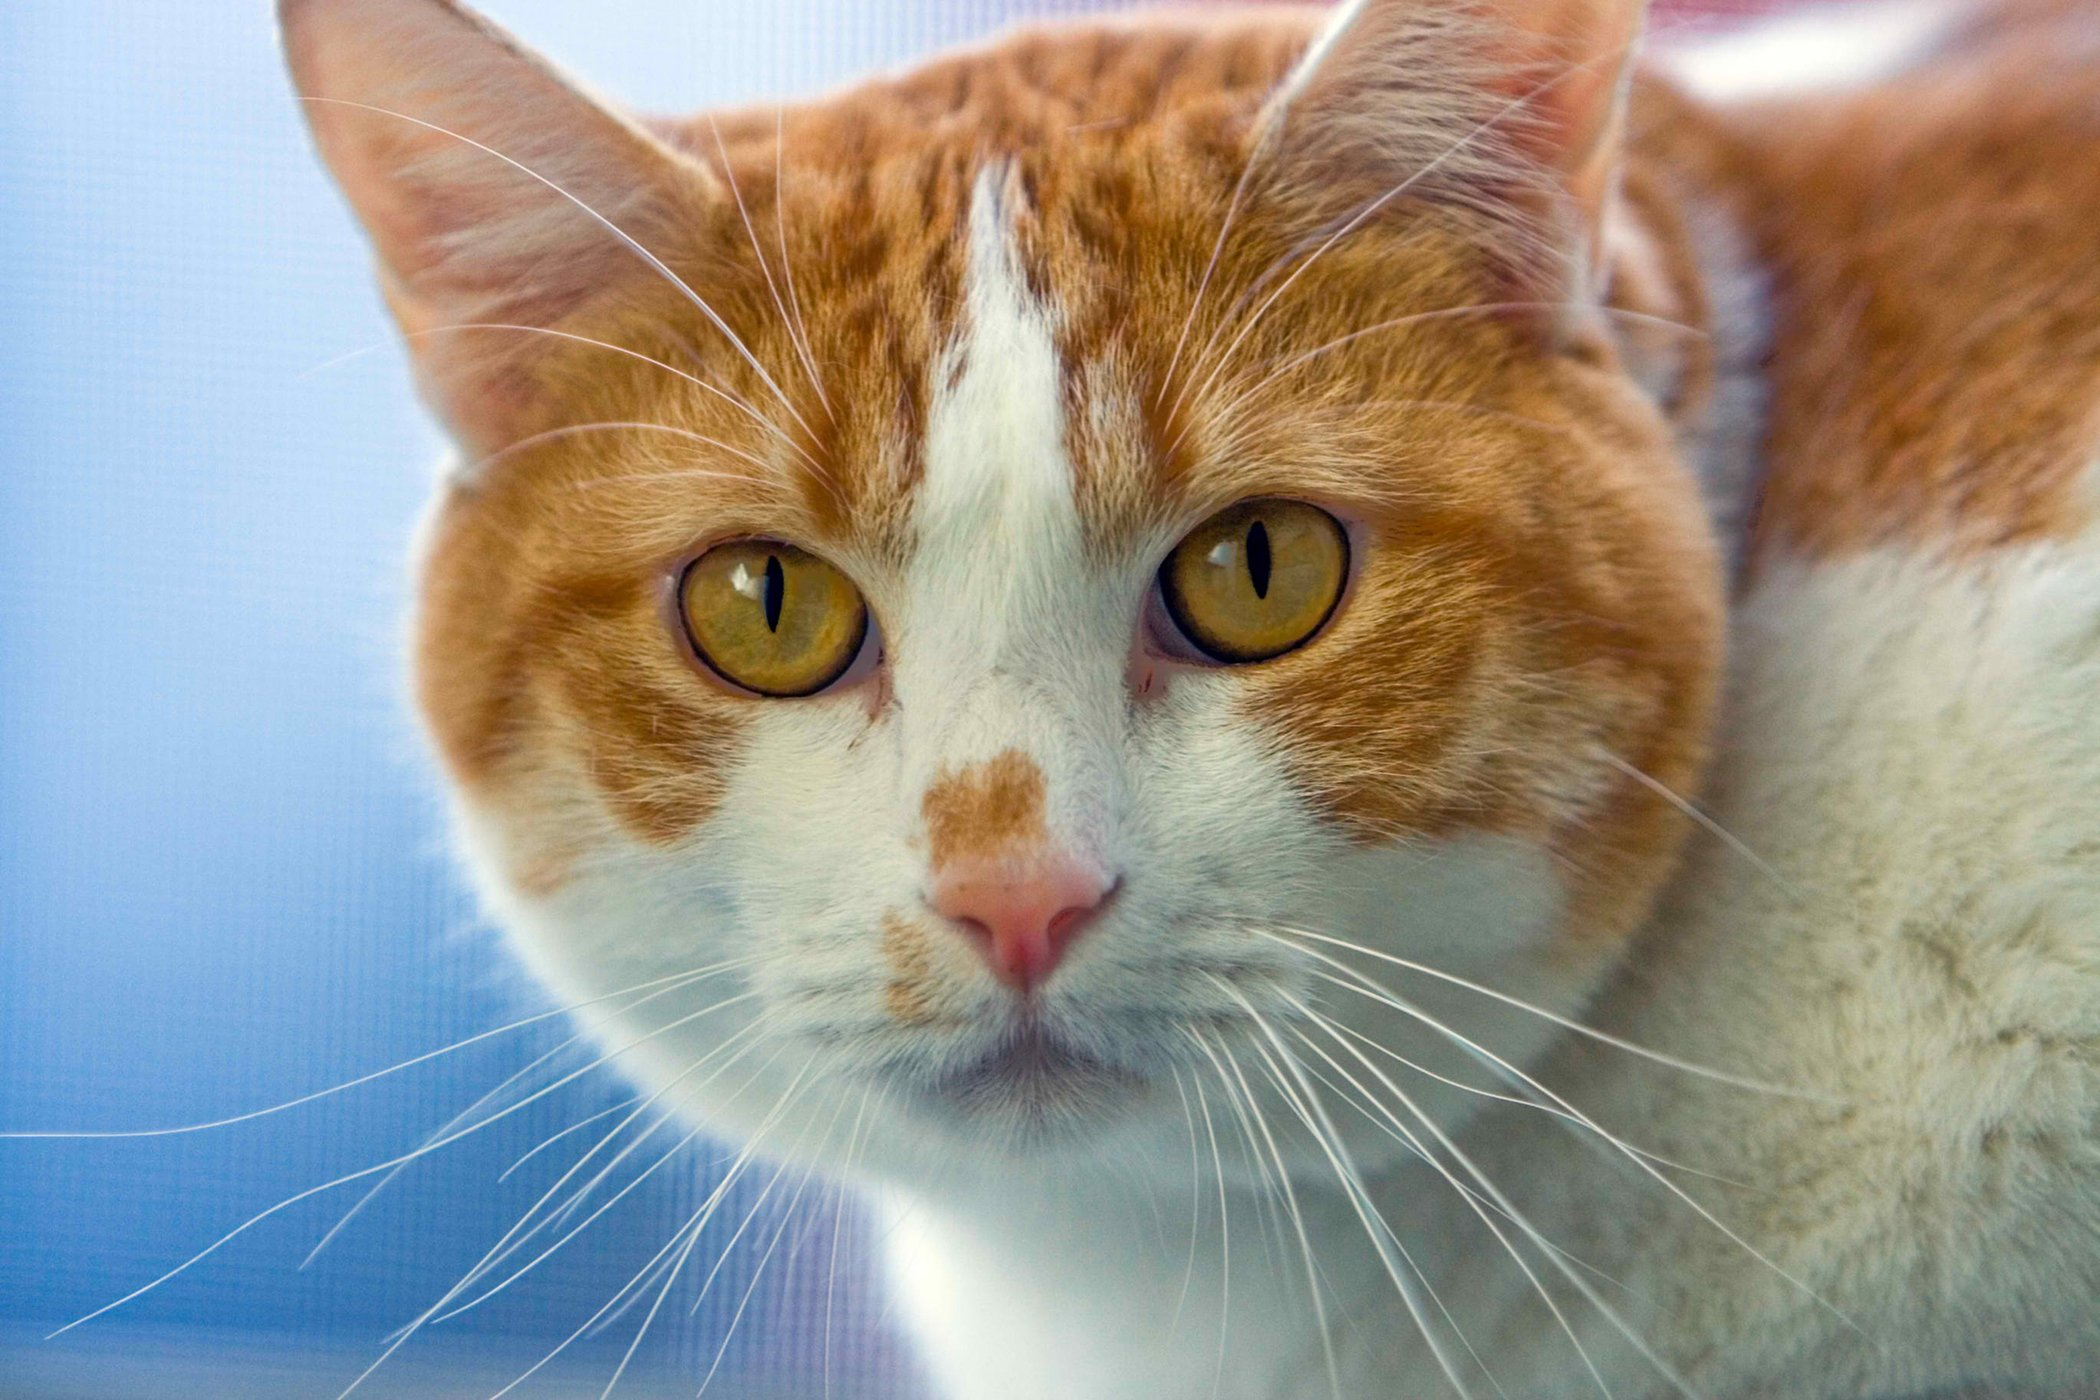 Depigmentation Disorders in Cats